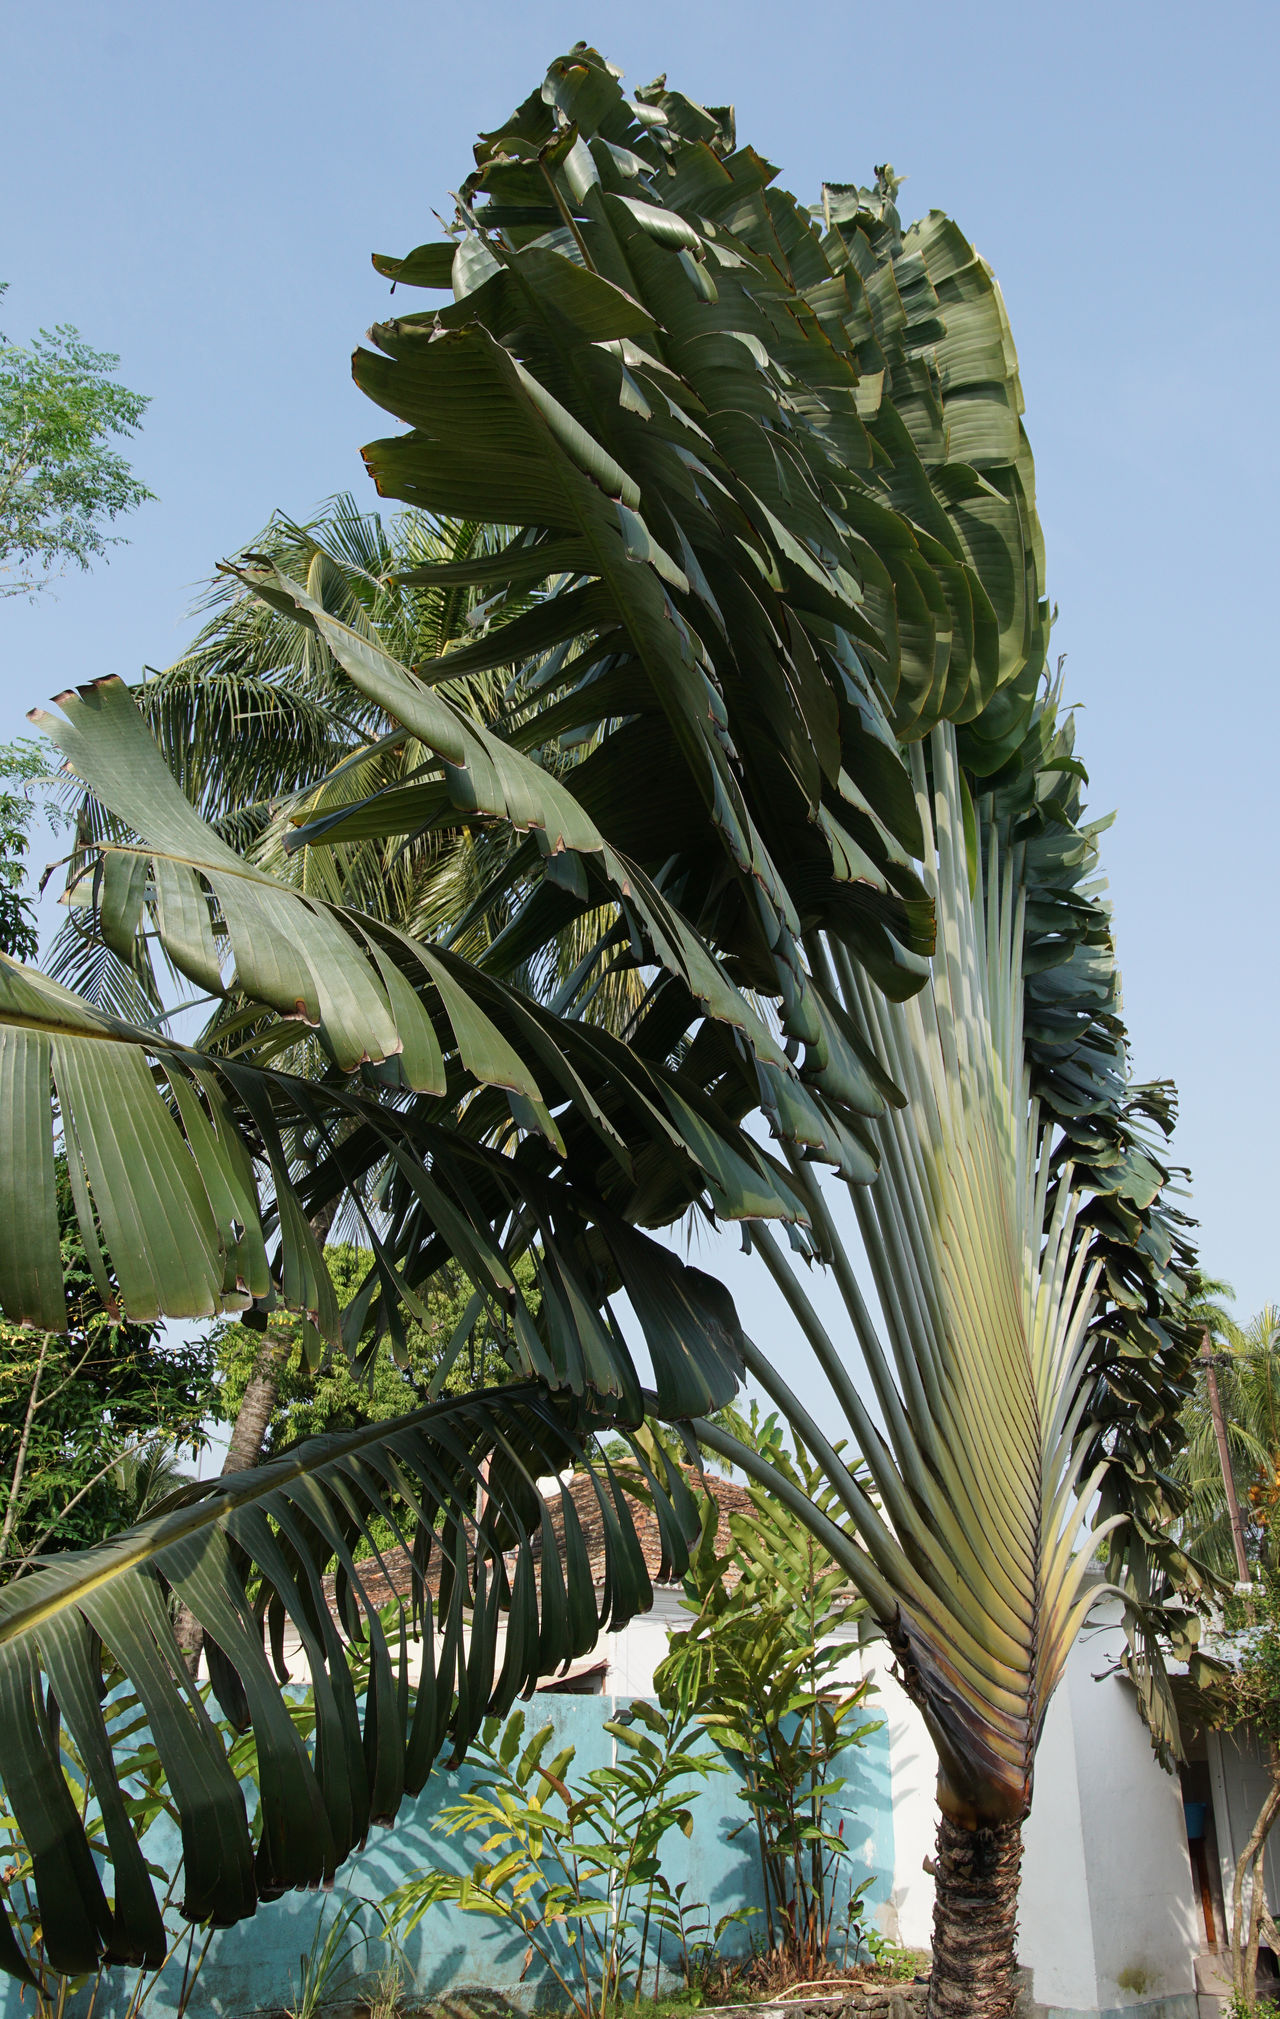 Traveller´s tree, Ravenala madagascariensis, Sao Tome, Africa Africa Botanic Day Flora Humid Climate Nature No People Outdoors Palm Tree Plant Ravenala Ravenala Madagascariensis Sao Tome Sao Tome And Principe Tourism Travel Traveller´s Tree Tree Tree Tropical Tropical Climate Vegetation